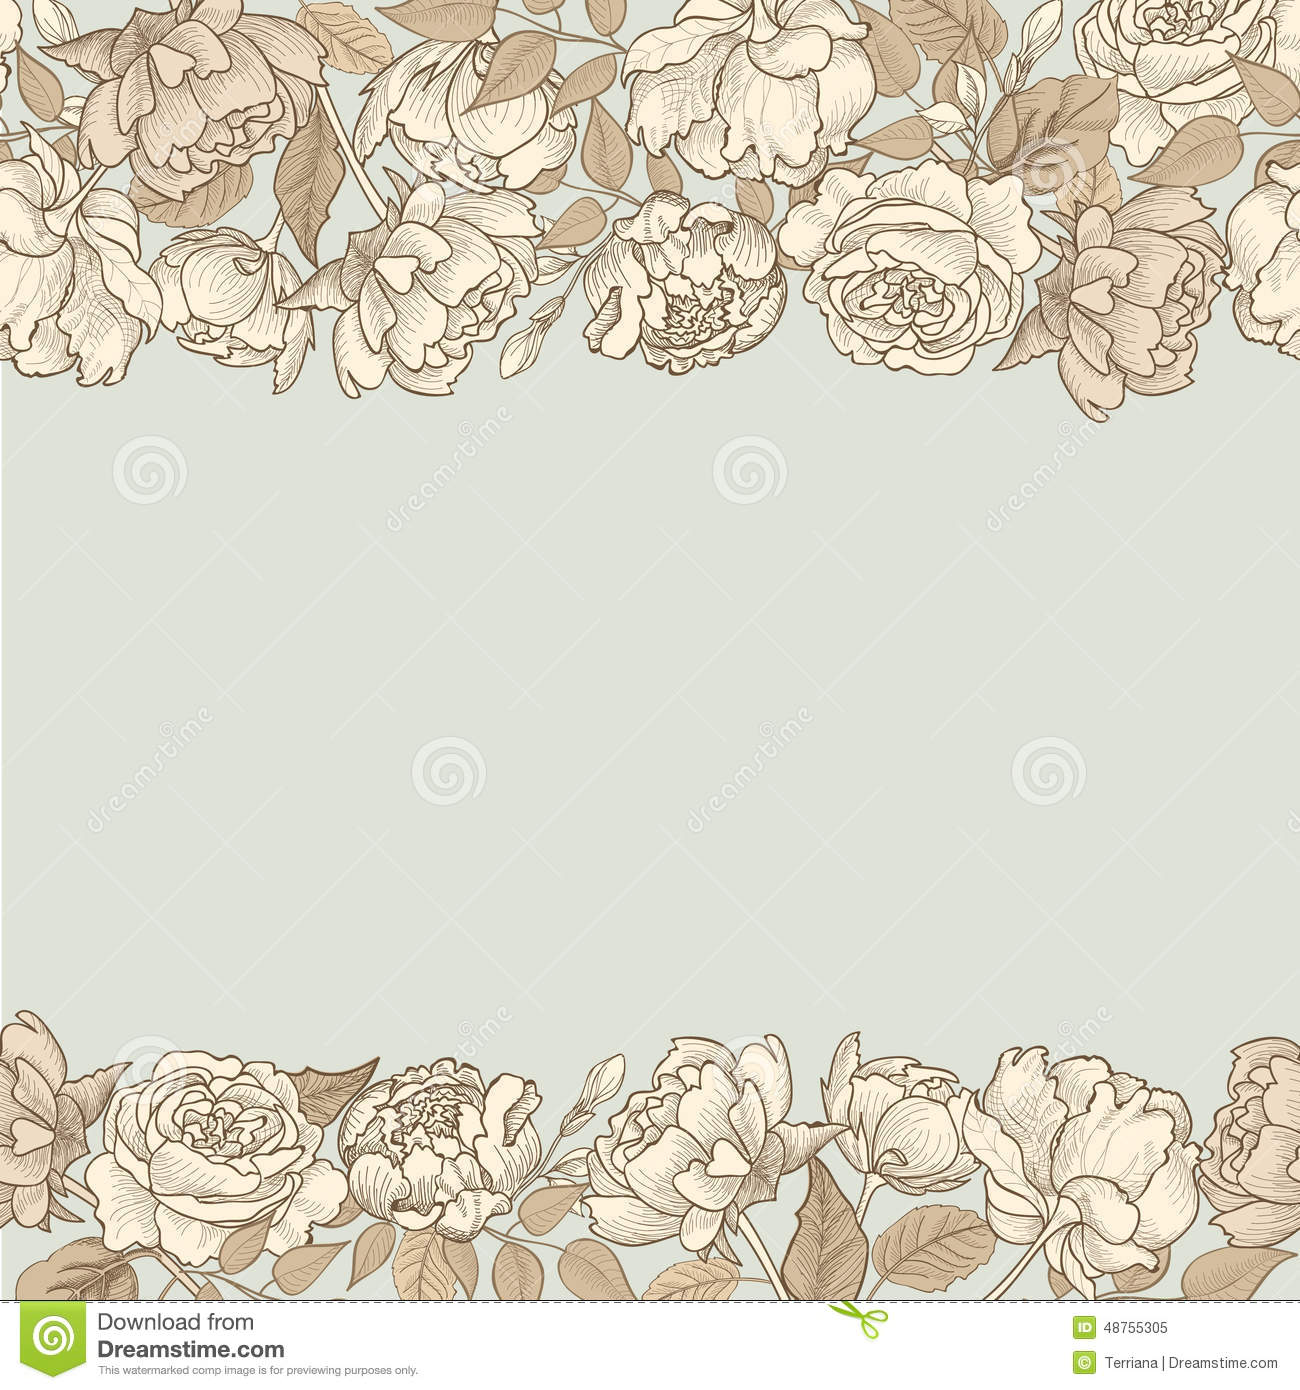 Flower frame. Floral seamless border. Vintage flourish textured